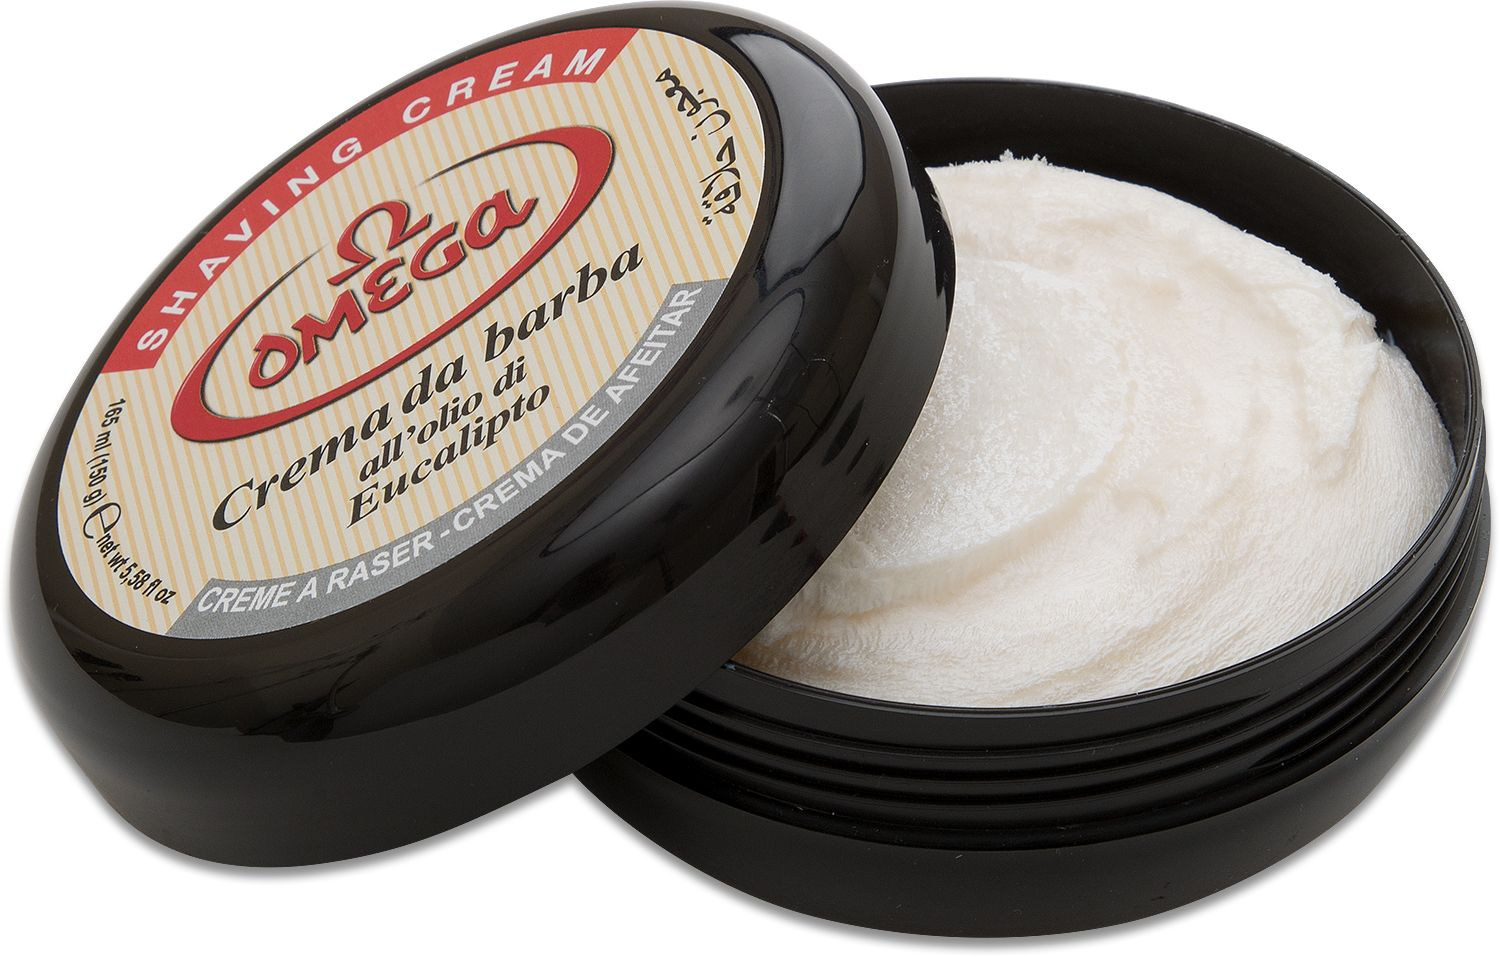 Omega Italian Shave Soap in Plastic Tub with Eucalyptus Oil